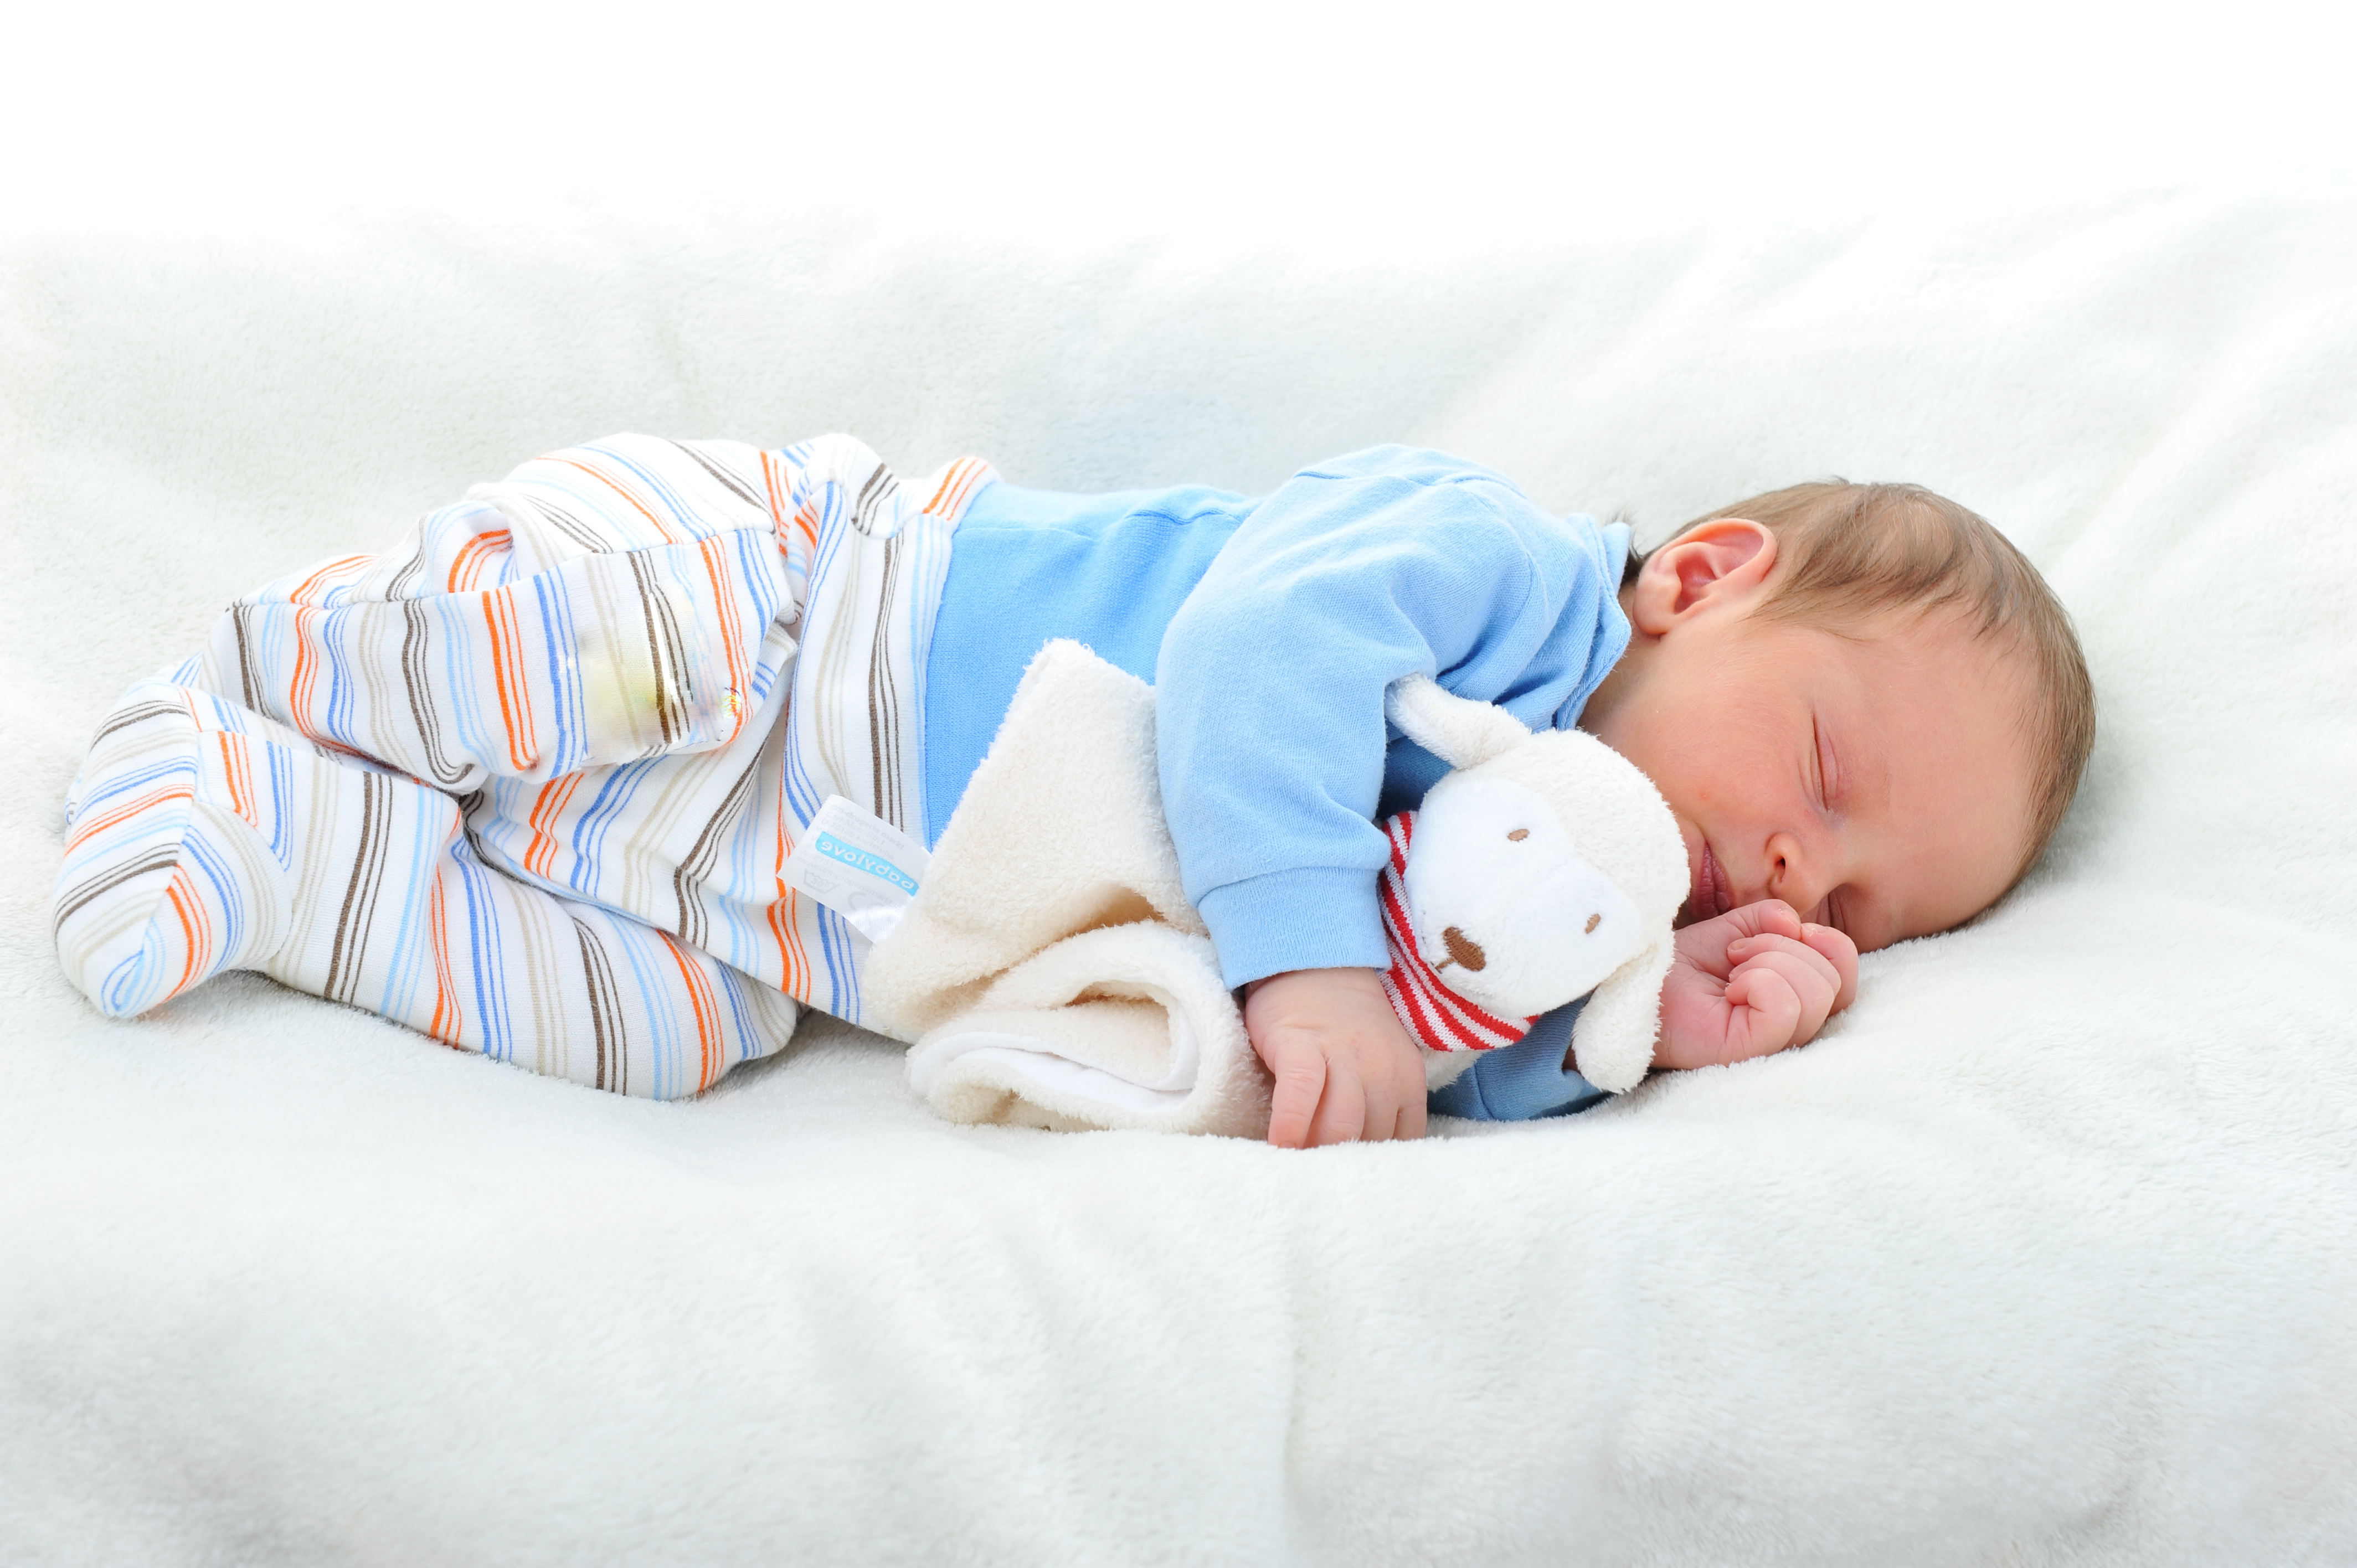 Cute baby sleeping on a comfortable bed